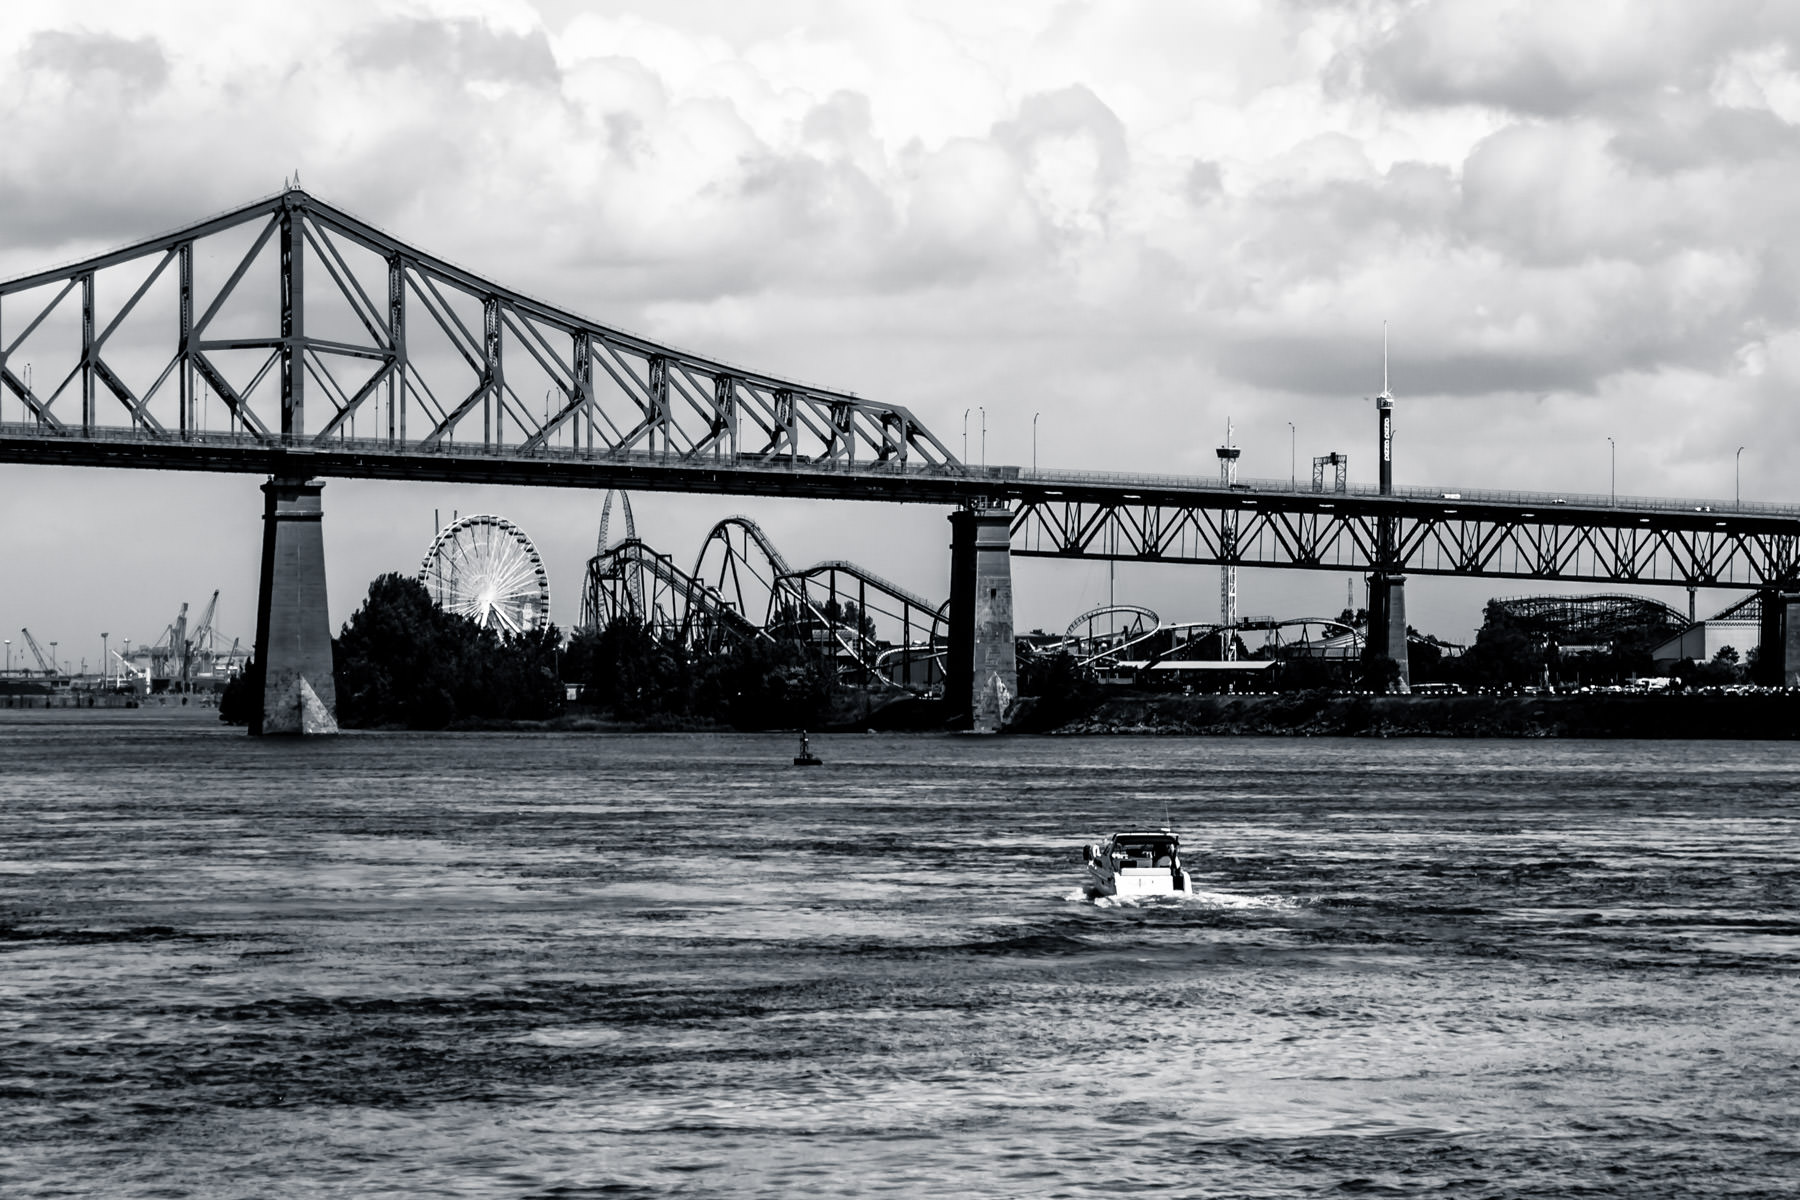 A boat appears to be traveling towards La Ronde, an amusement park on Montreal's Ile Sainte-Helene.